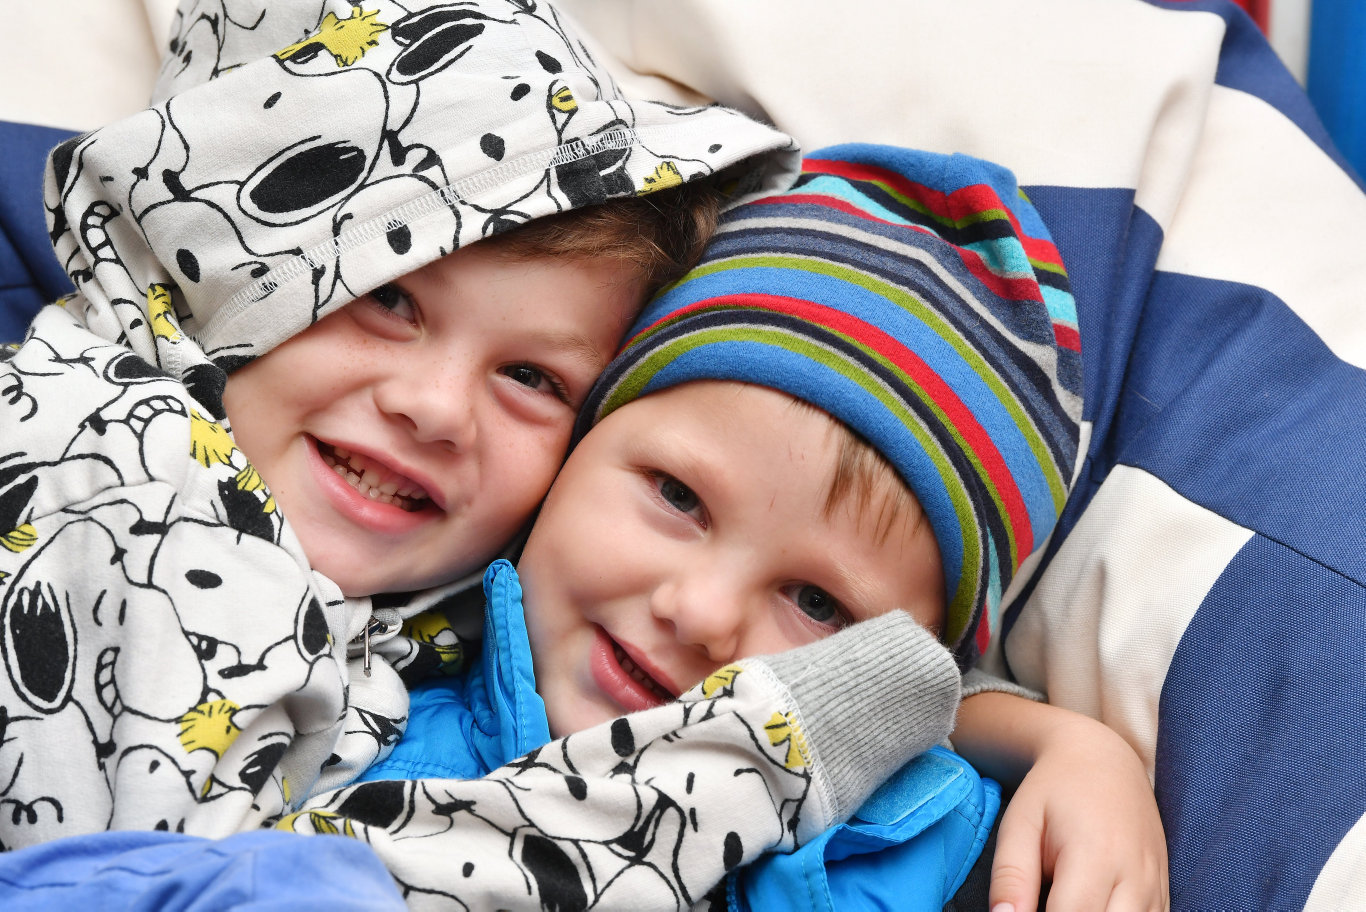 Zavier Rae, 5 and his younger brother Amais Rae, 3 are prepared for the cold weather. Picture: Tony Martin